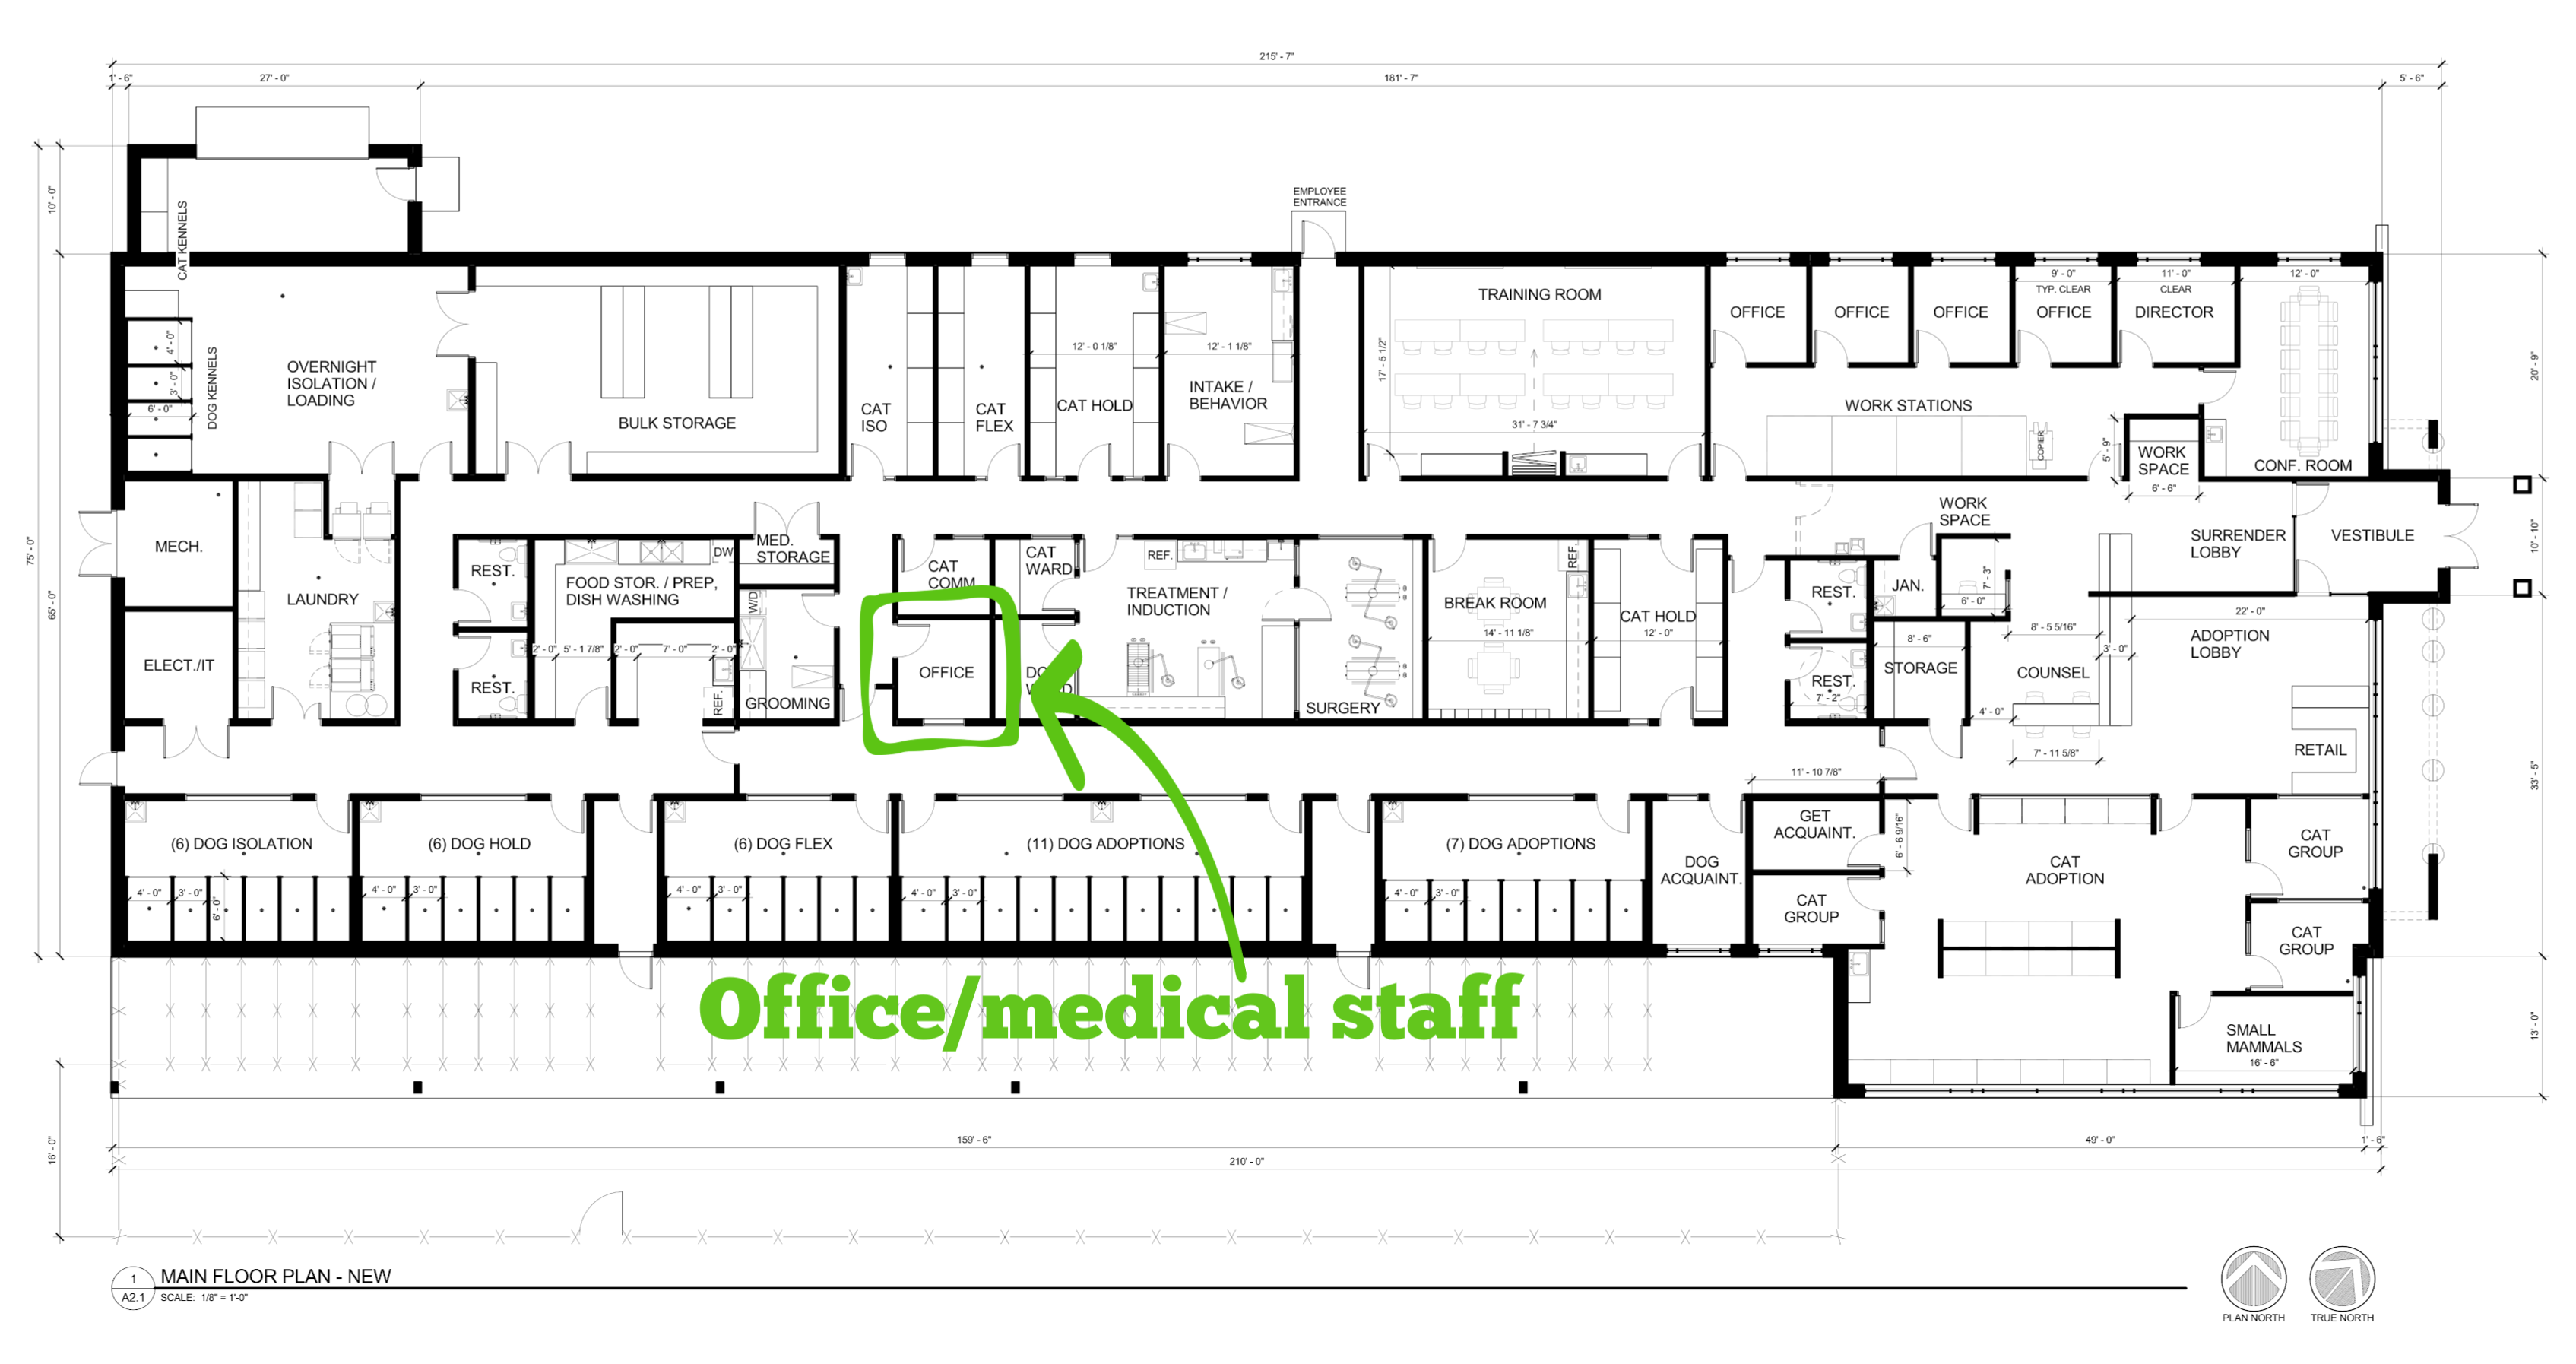 Office/Medical Staff